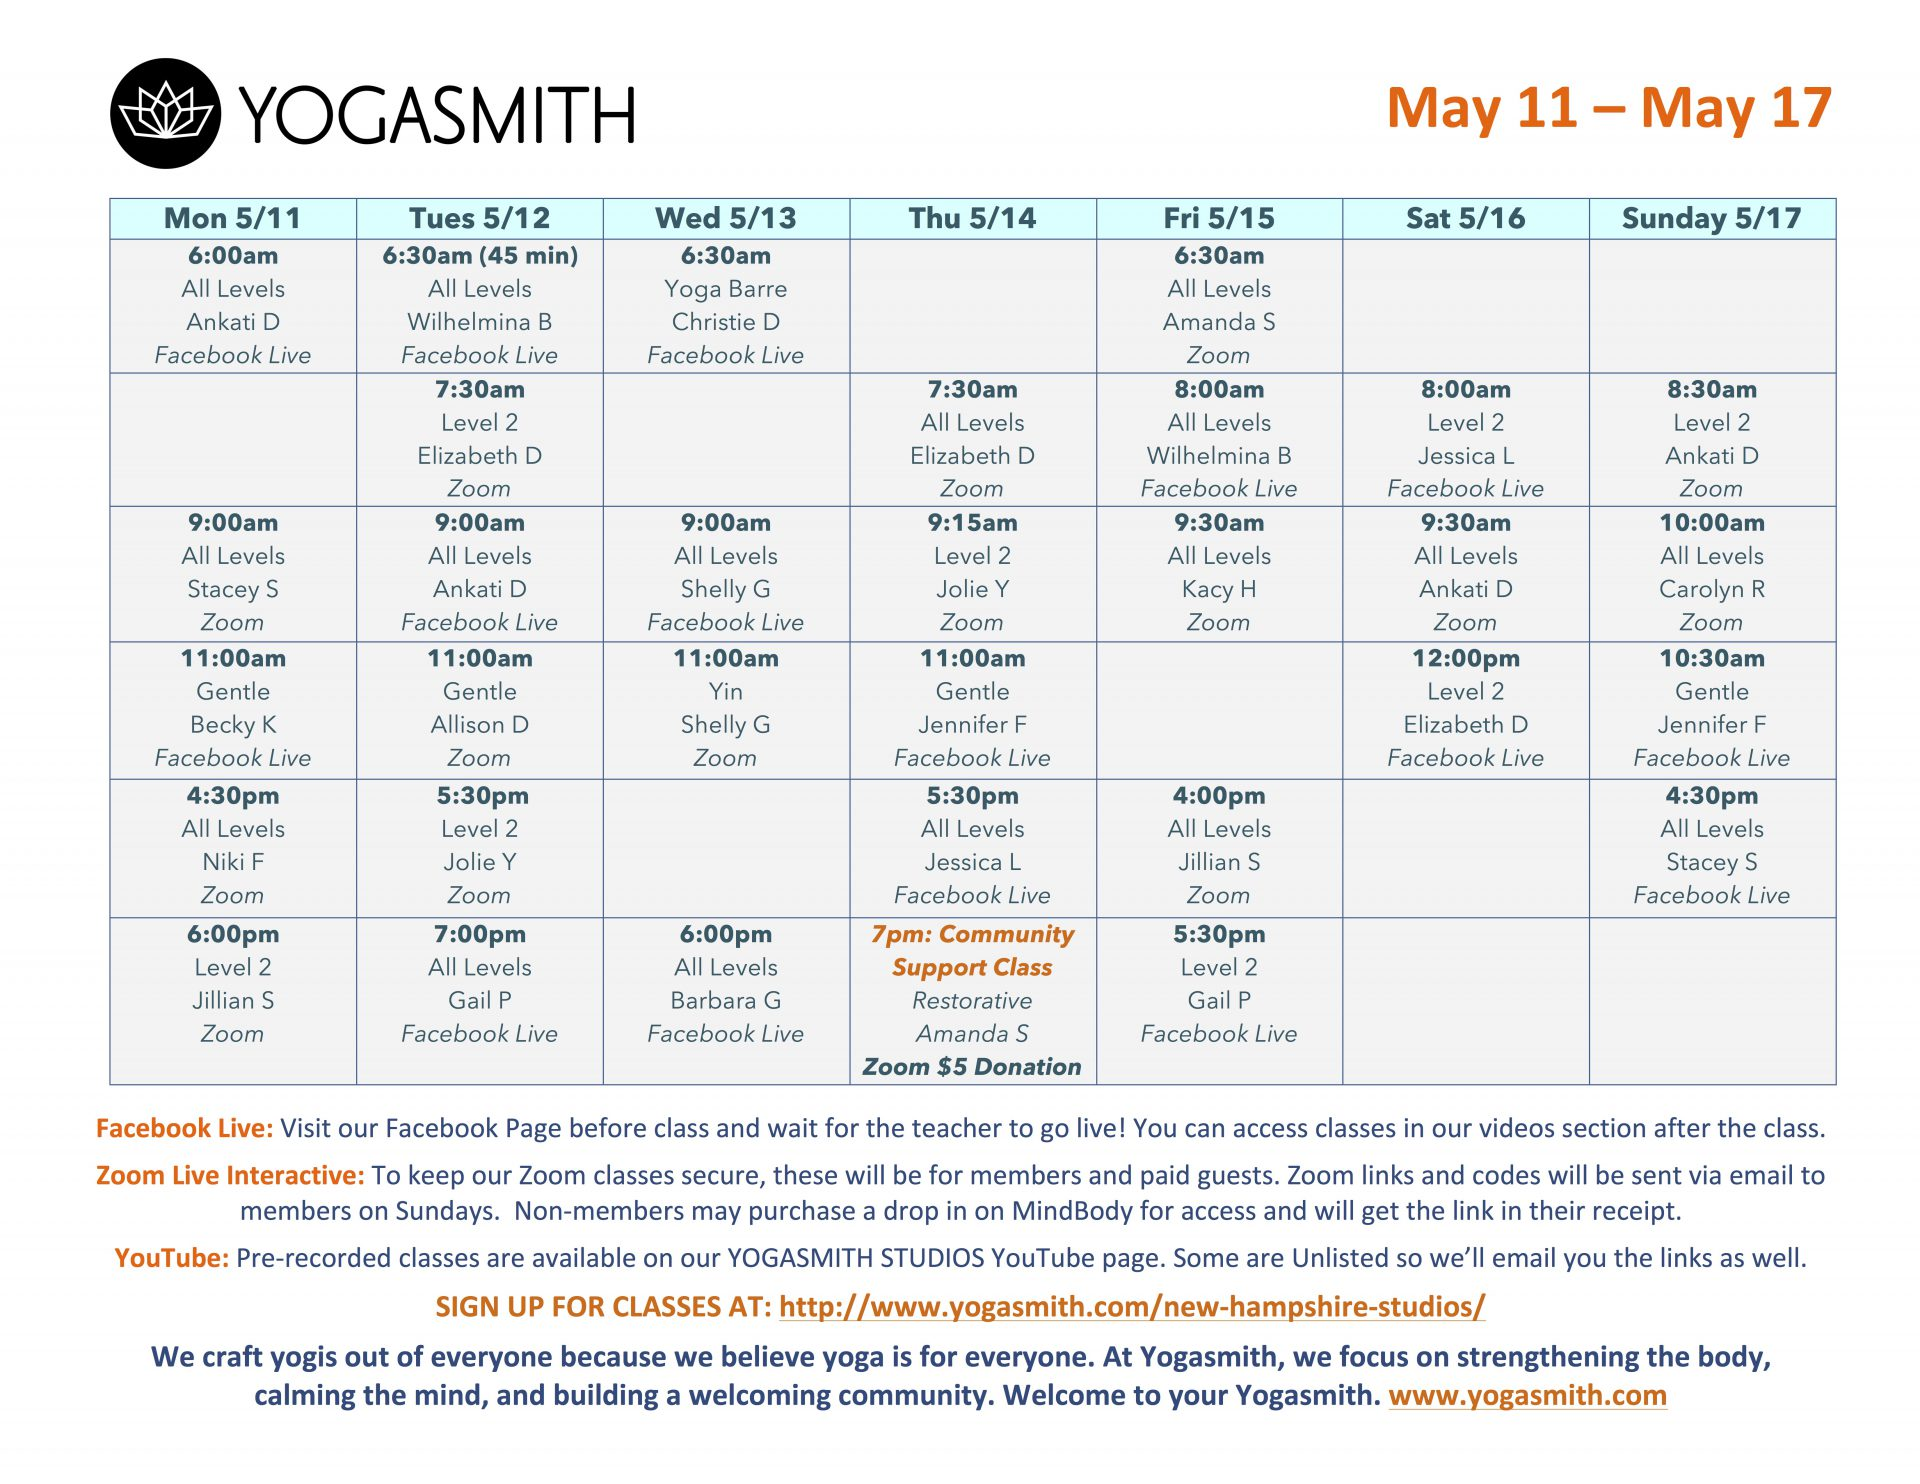 YOGASMITH Virtual Schedule May 11 to 17 2020